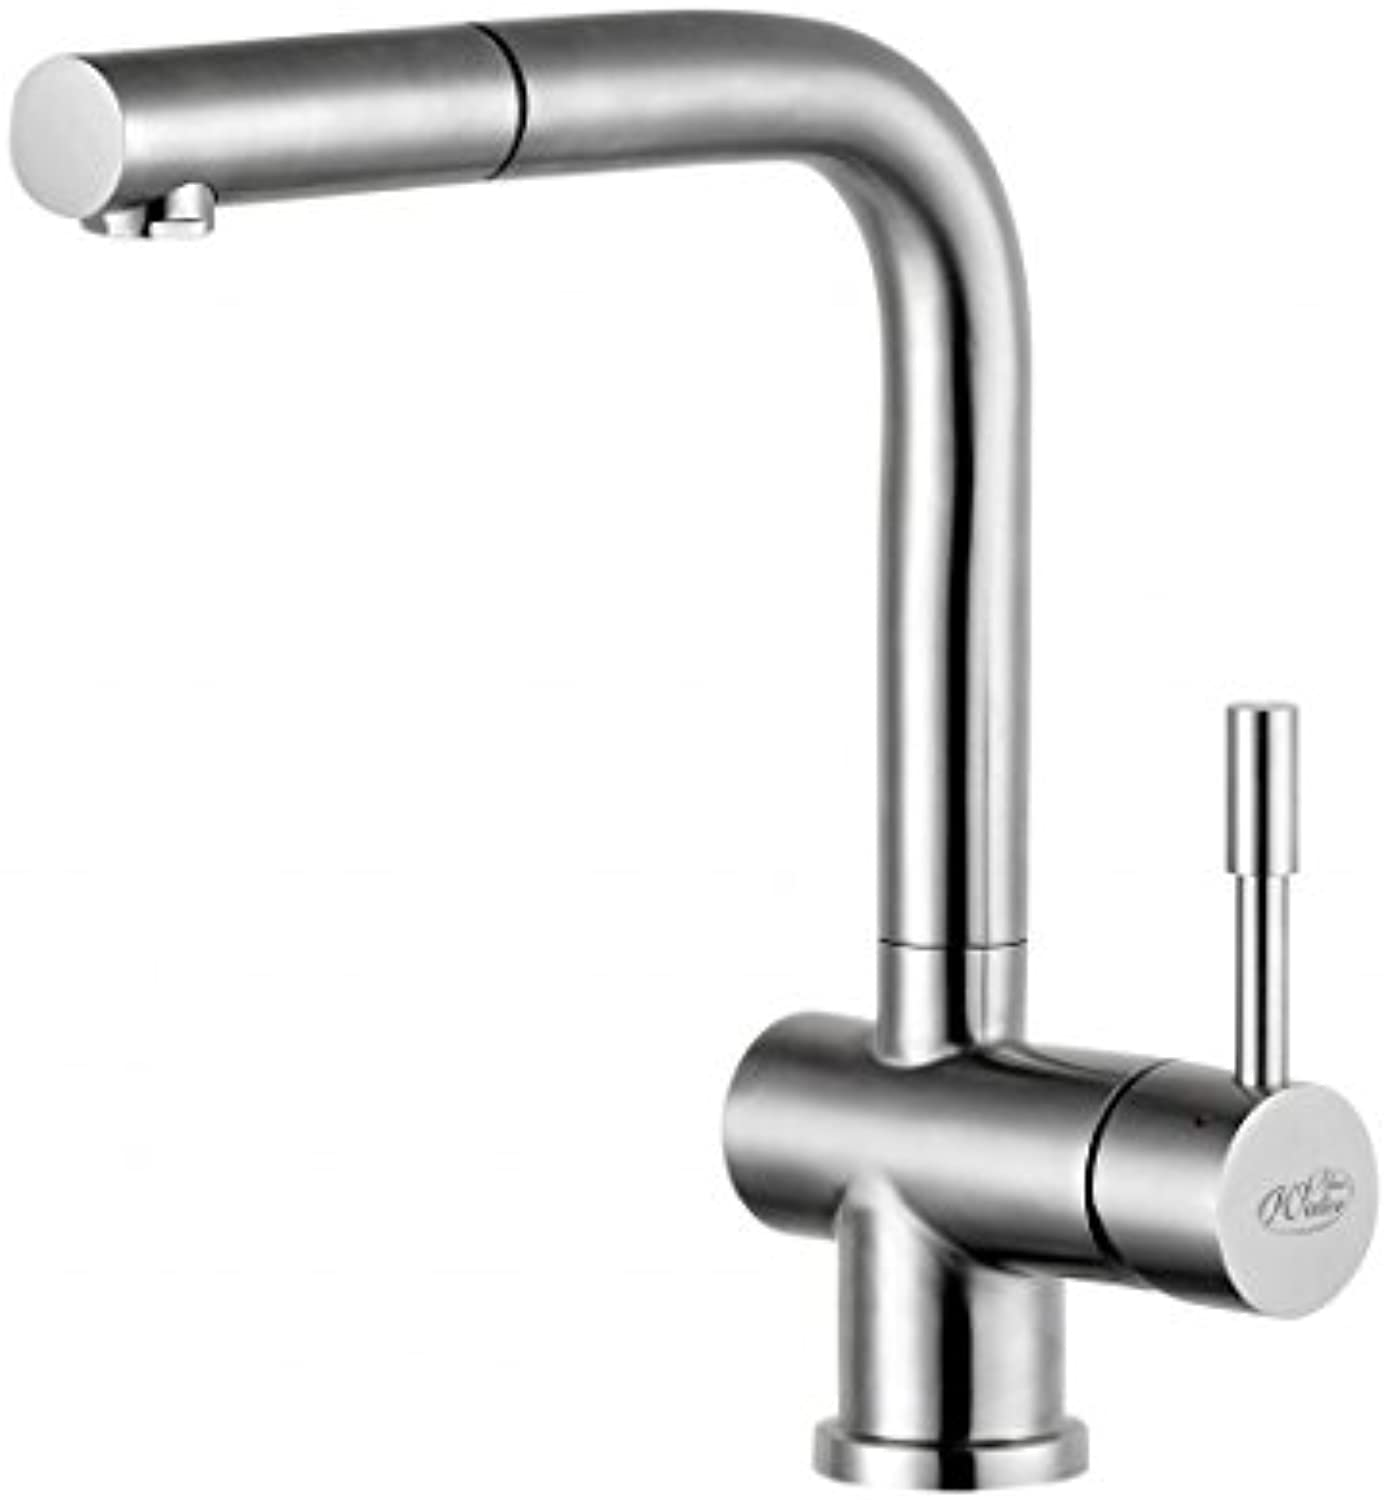 blueewater Kitchen Sink tap Made of Stainless Steel (Brushed) with Pull-Out spout Corsa-INOX, Grey